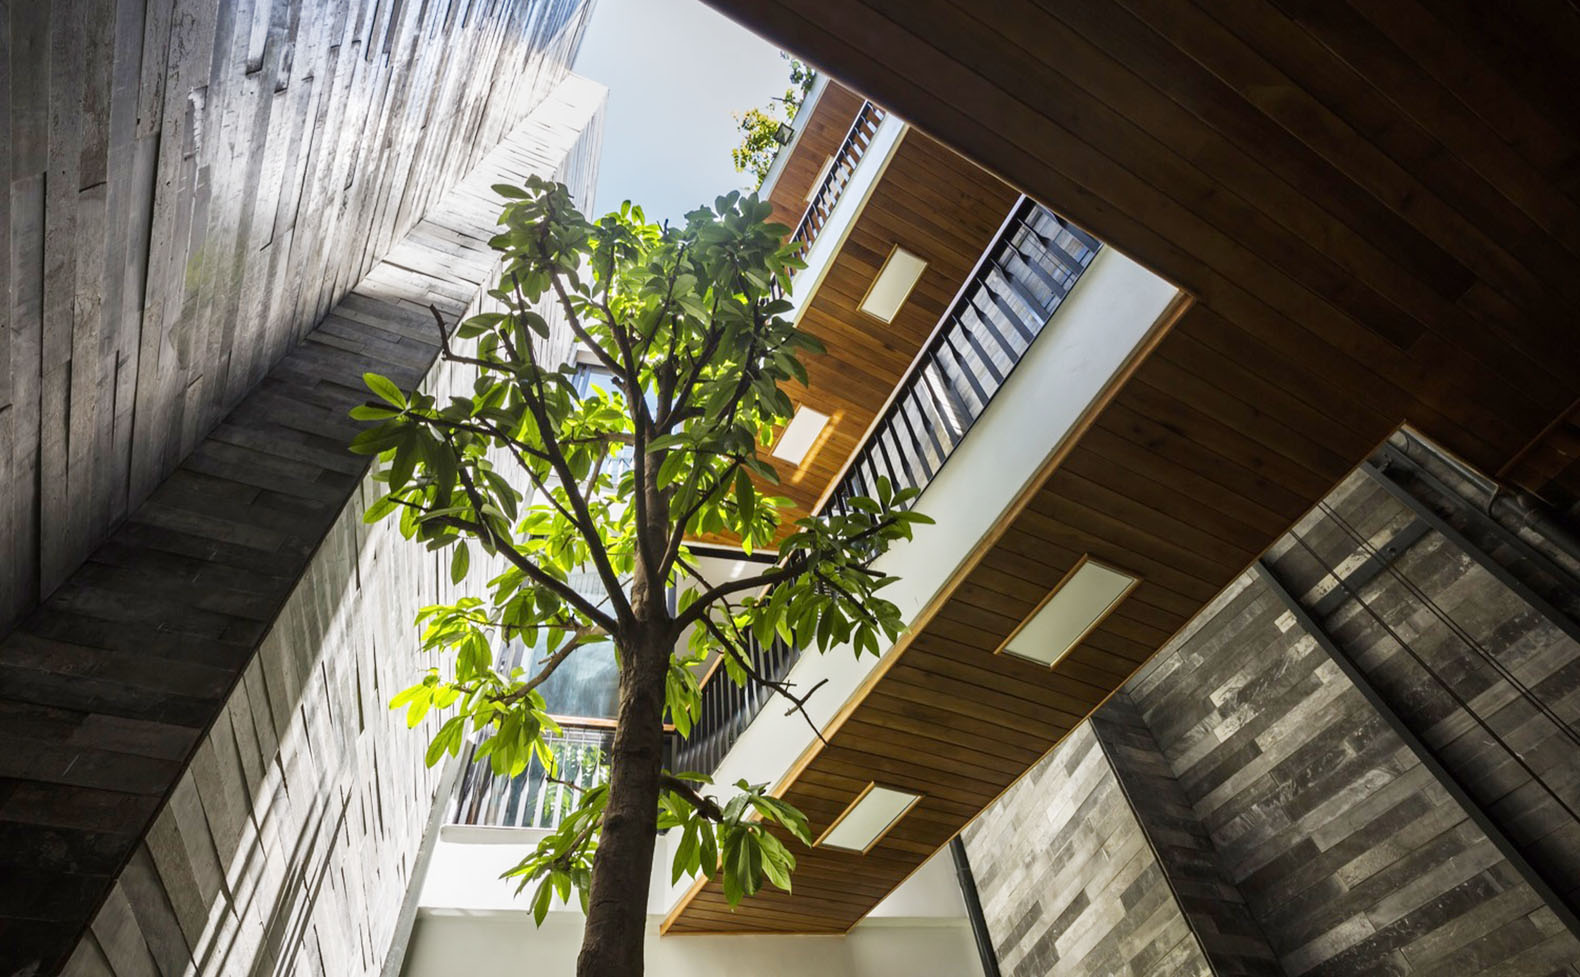 This Amazing 13 Feet Wide Family Home In Vietnam Is Packed With Lush